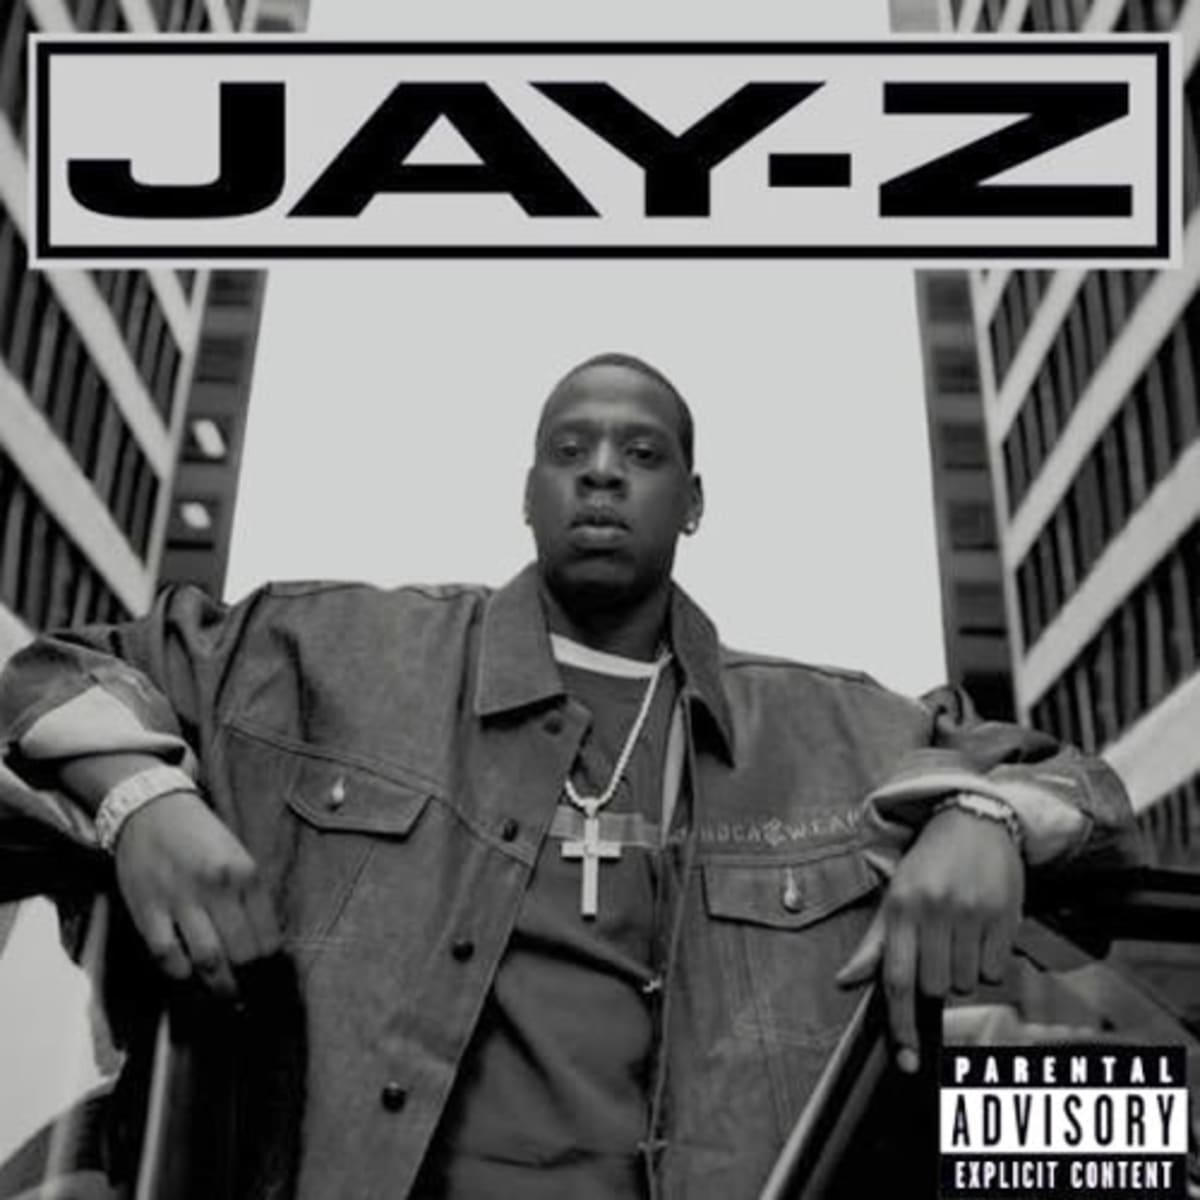 Jays vol 3 is better than the black album complex malvernweather Image collections